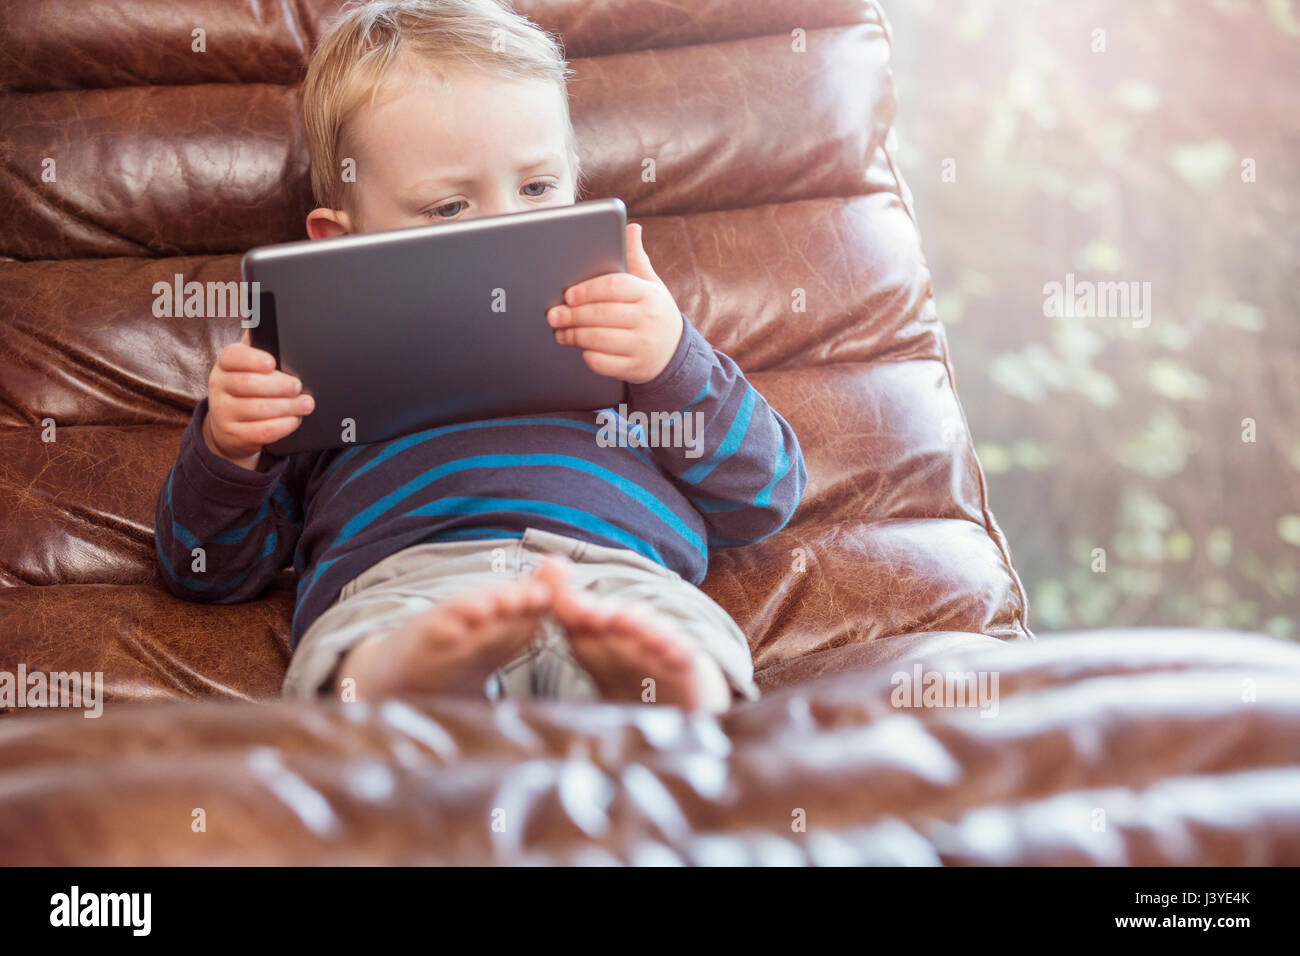 toddler boy reclining on chair looking at tablet - Stock Image